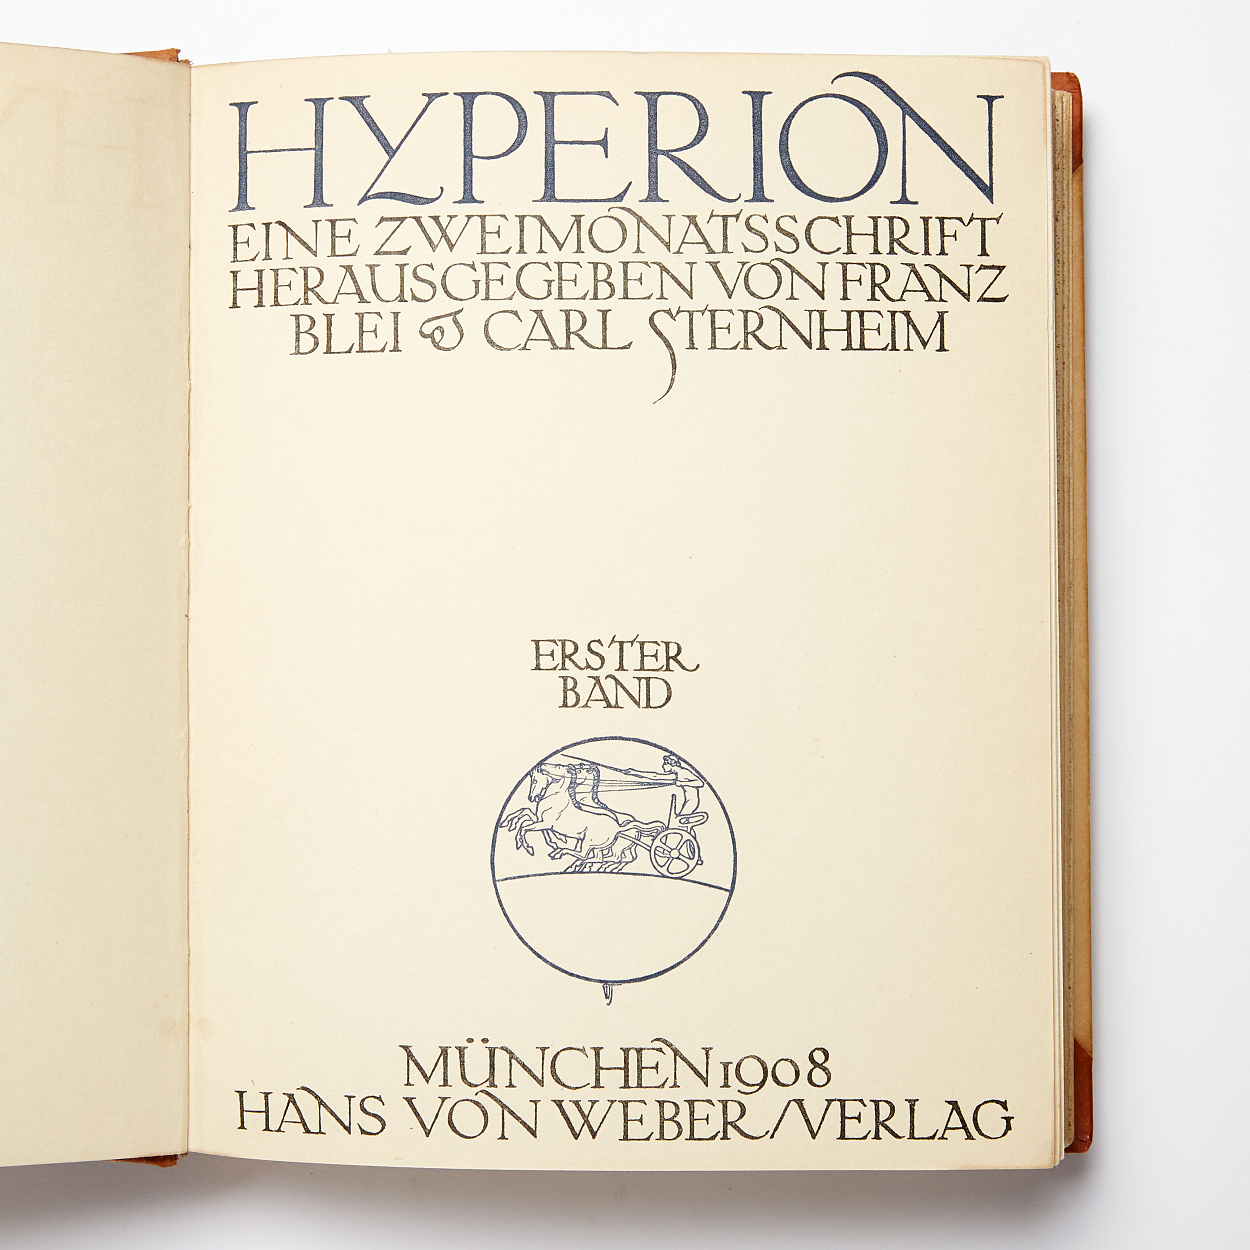 Hyperion - German magazine from 1908-10